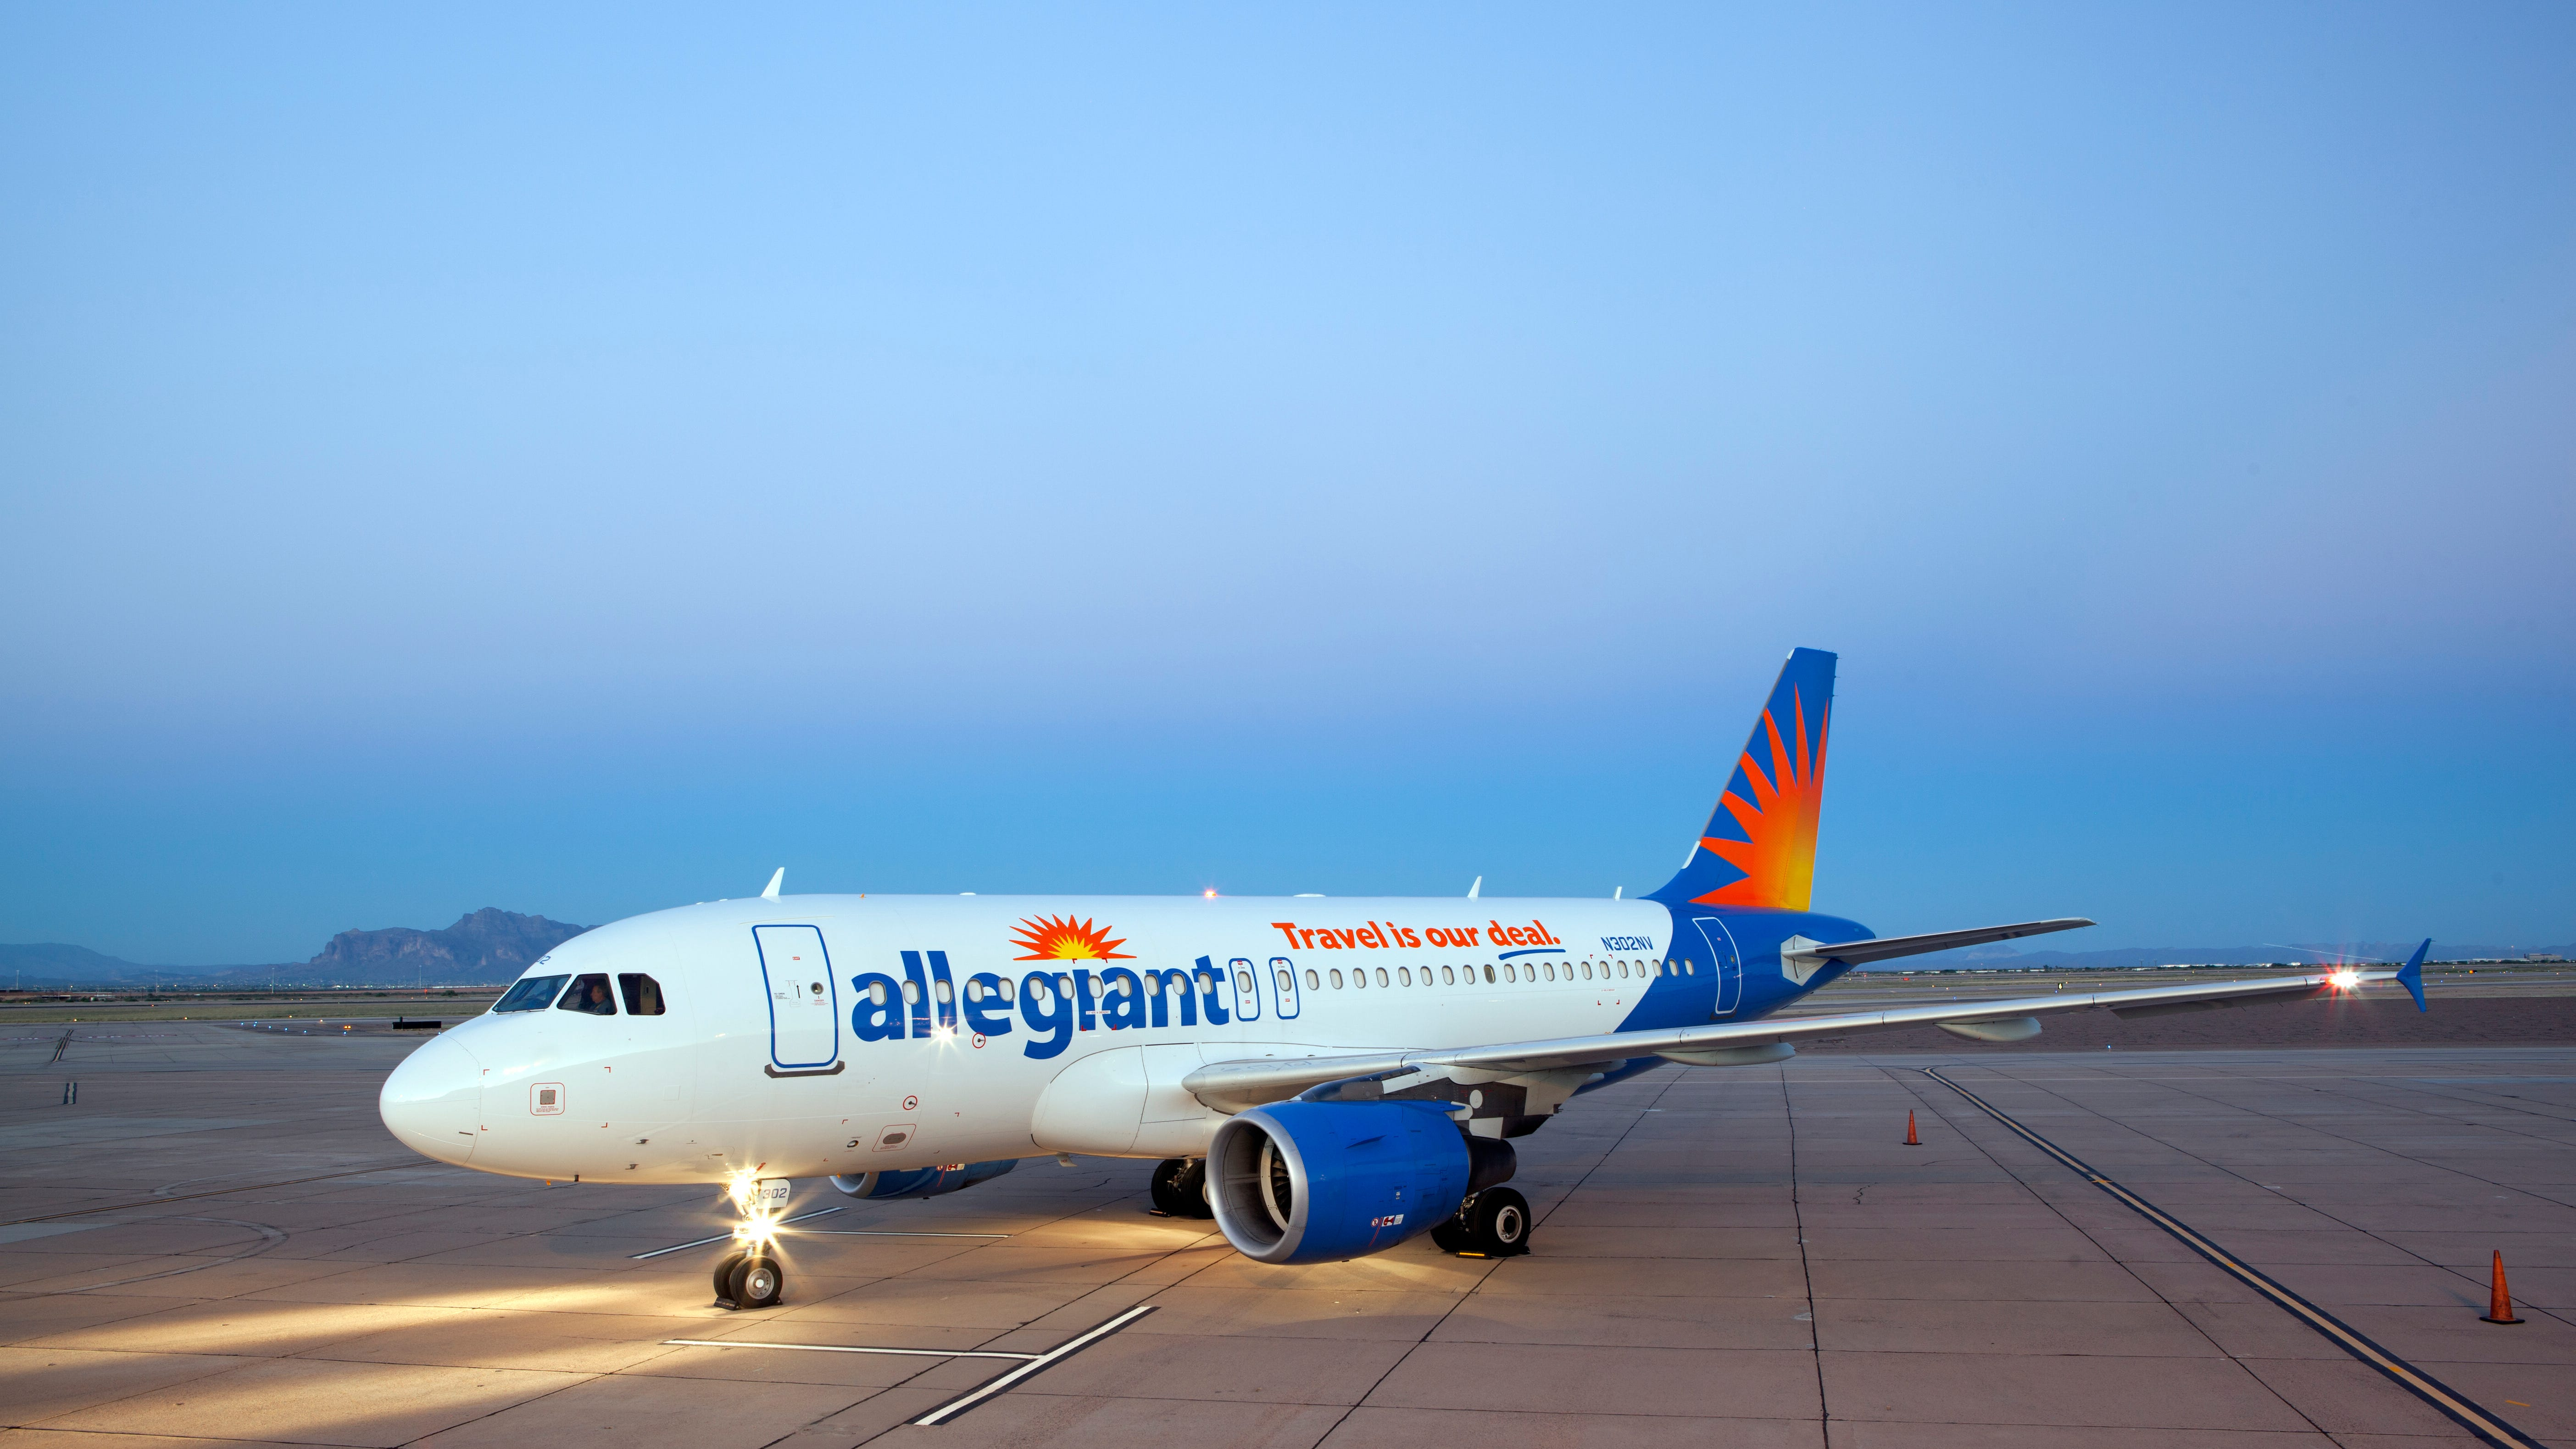 Allegiant Air fined $225,000 for keeping planes too hot during tarmac delays